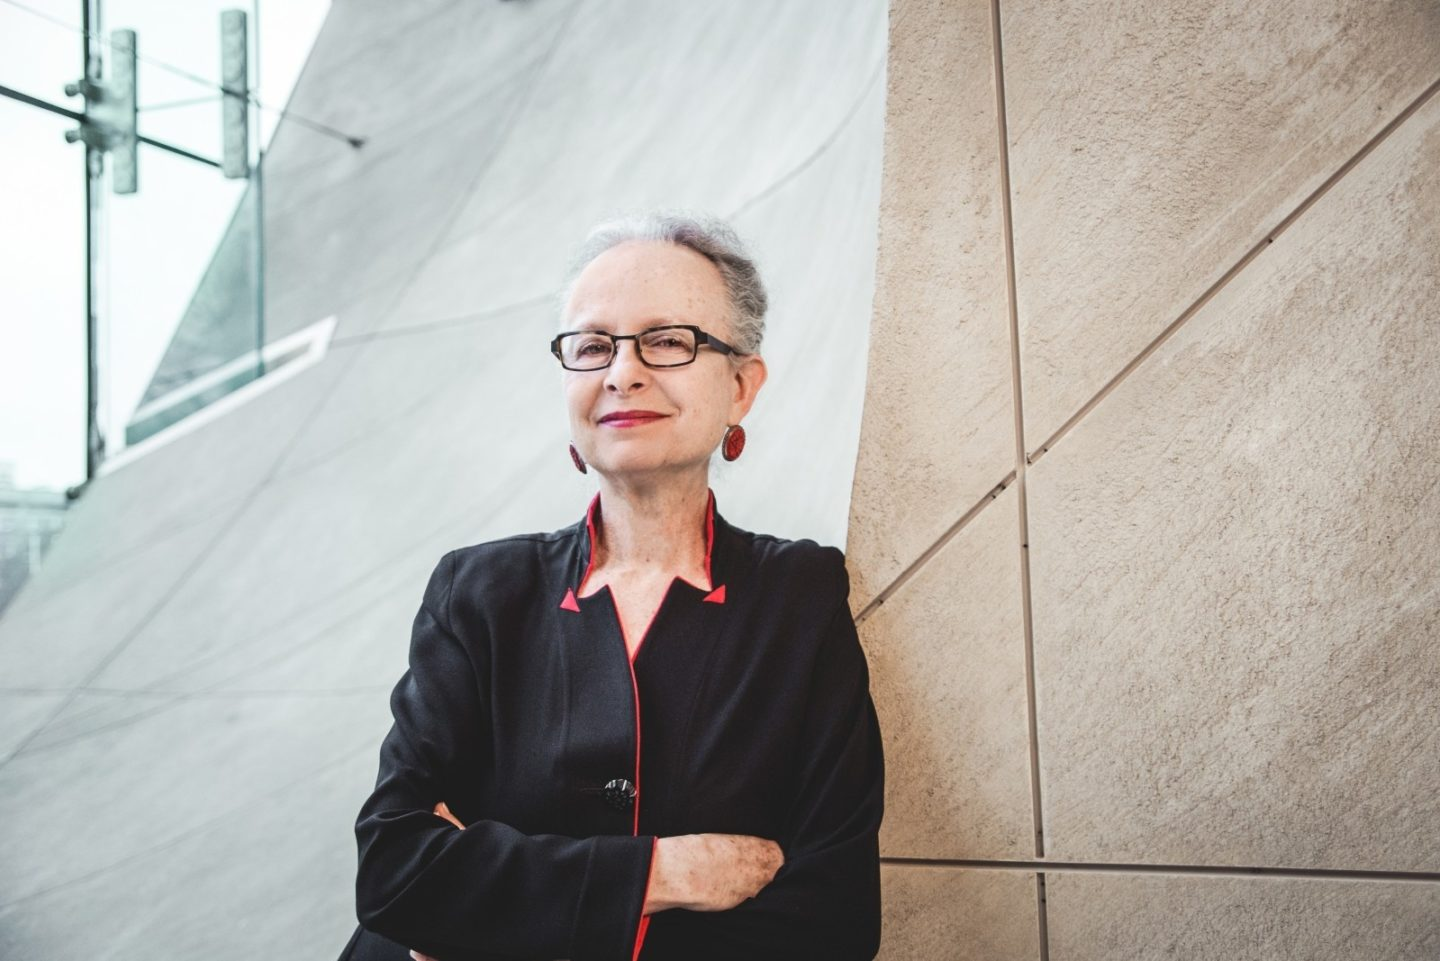 "<p>Professor Barbara Kirshenblatt-Gimblett, Chief Curator of the Core Exhibition of <span class=""caps"">POLIN</span> Museum of the History of Polish&nbsp;Jews</p>"